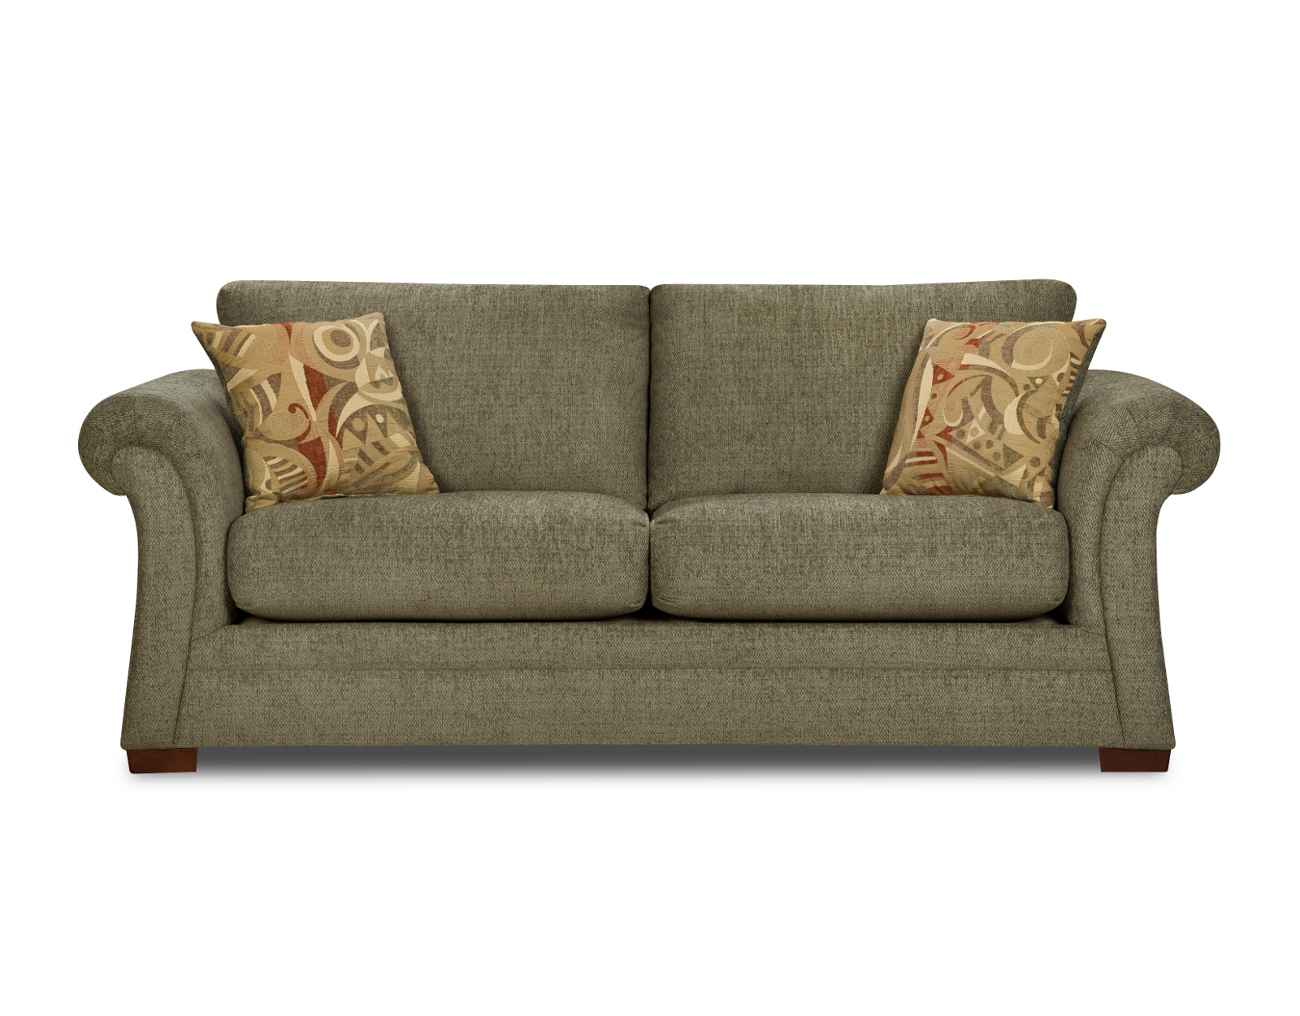 Cheap sofas couches living room images for Sofas